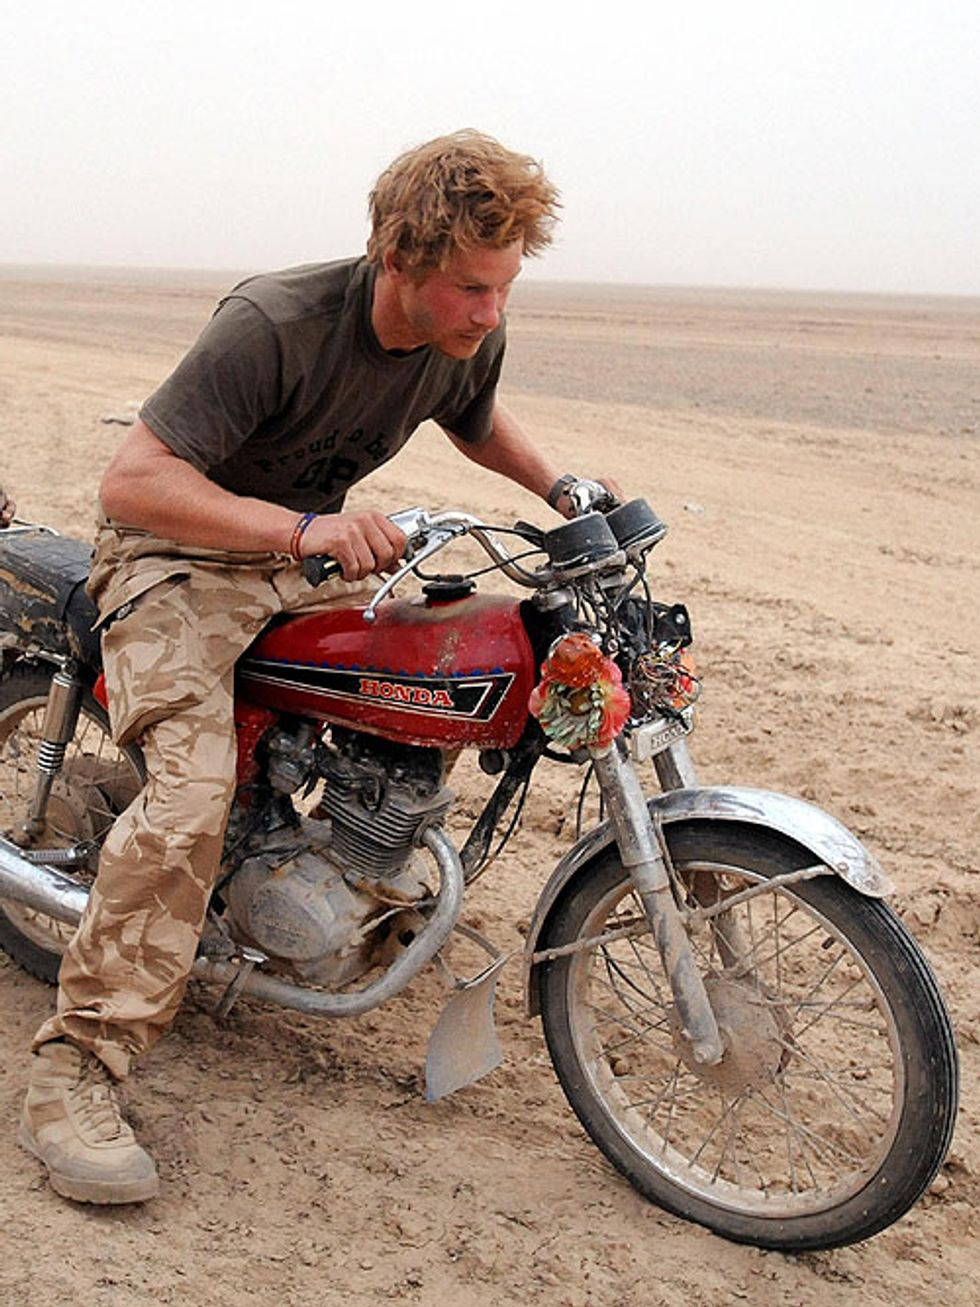 Harry and William of Wales to Do Charity Motorcycle Ride Through South Africa